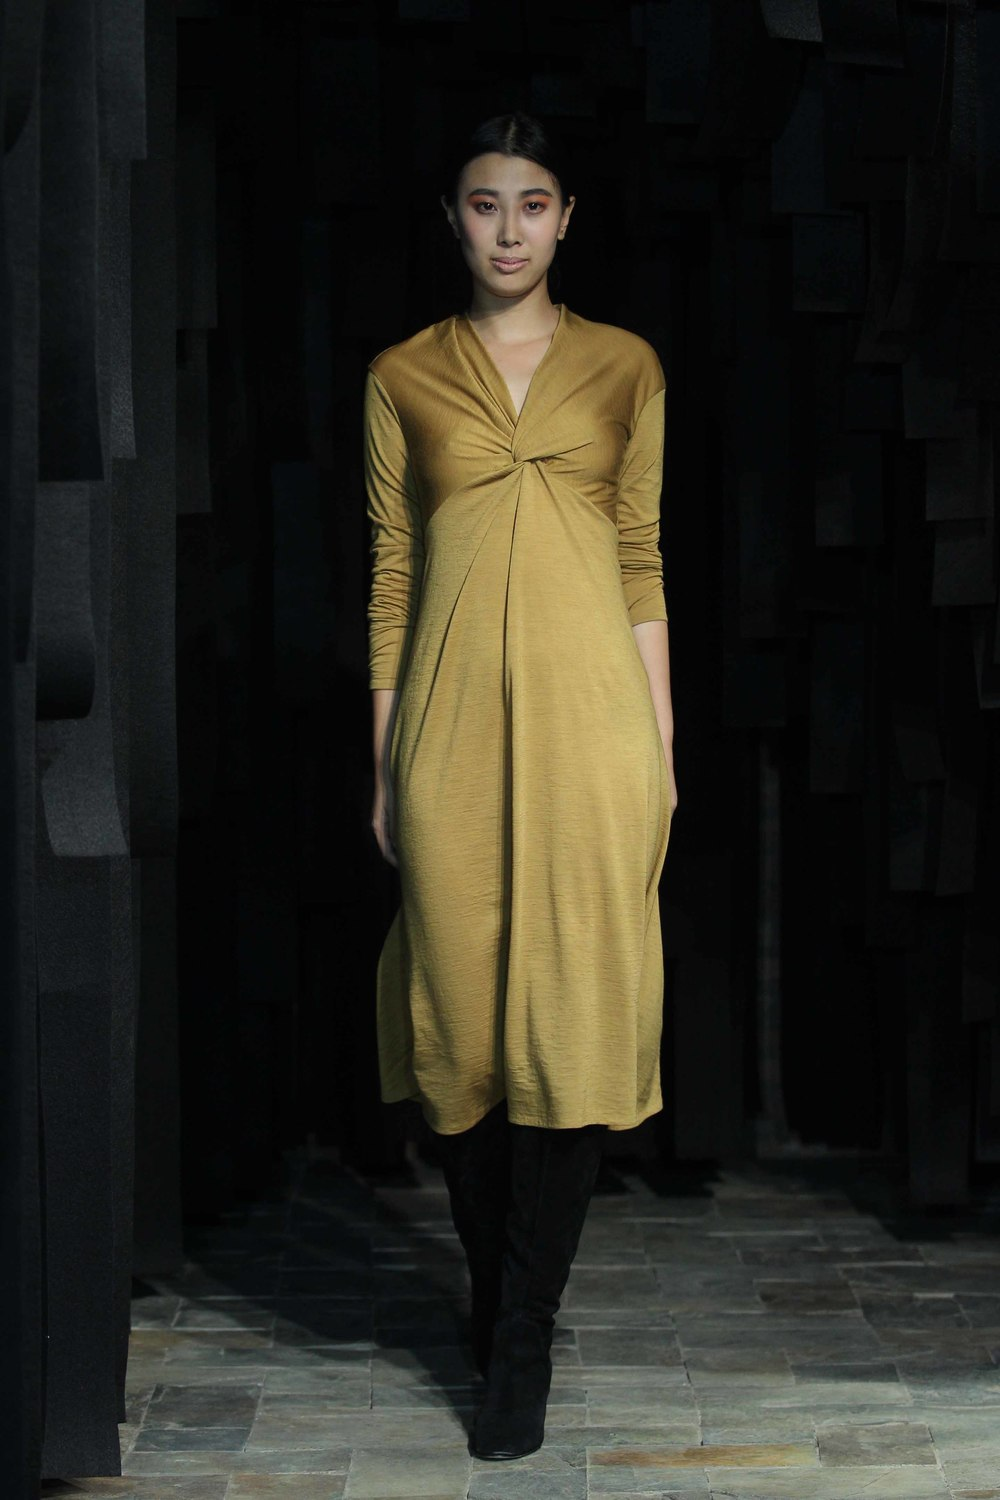 Mustard hand-dyed woolen knot detail dress